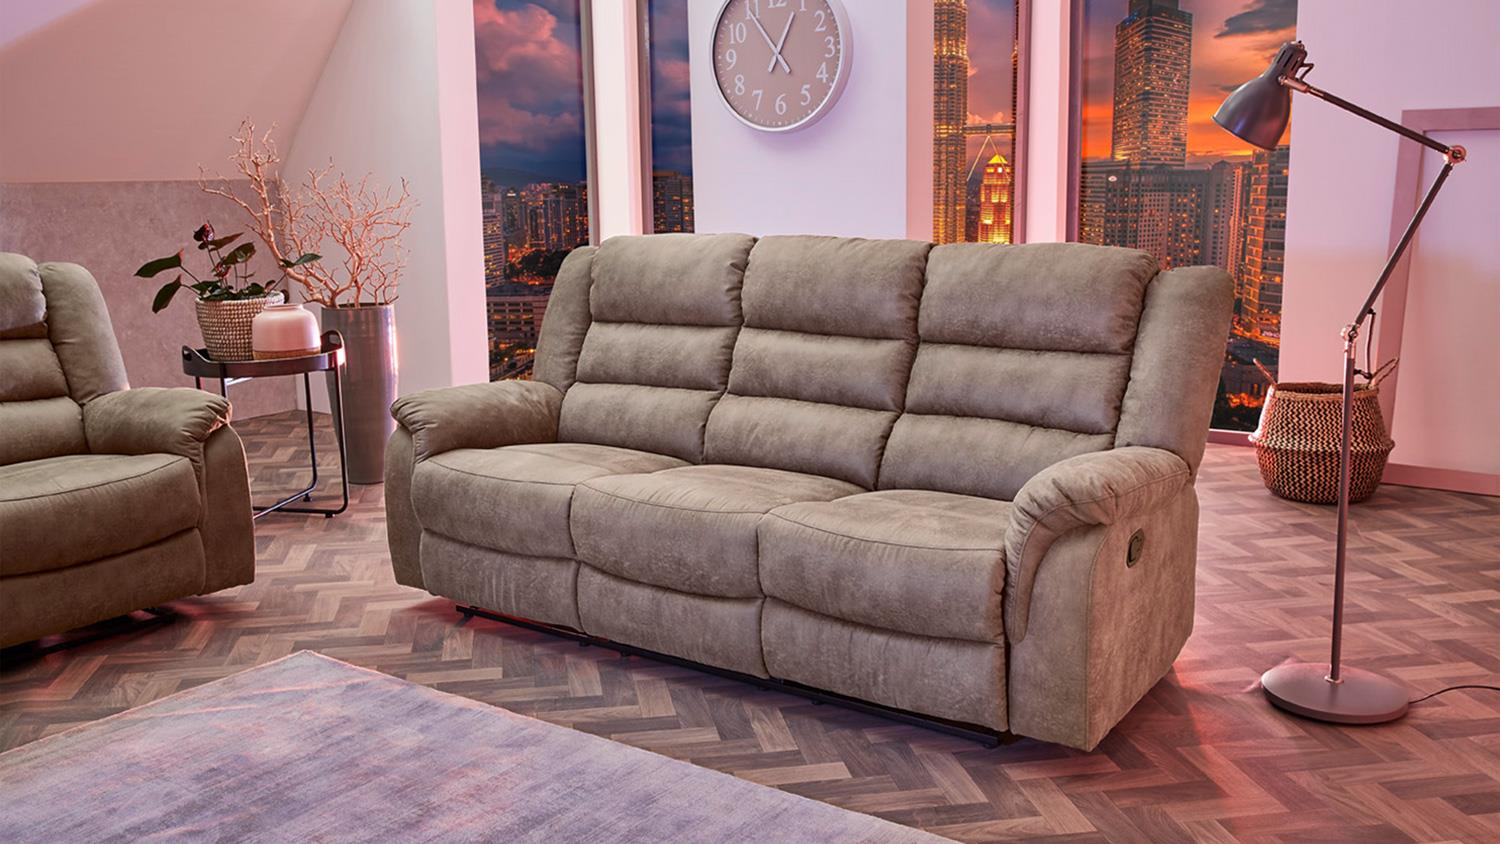 Sofa 3 Sitzer Mit Sessel Sofa Cleveland Sessel Relaxsessel 3 Sitzer Funktion Vintage